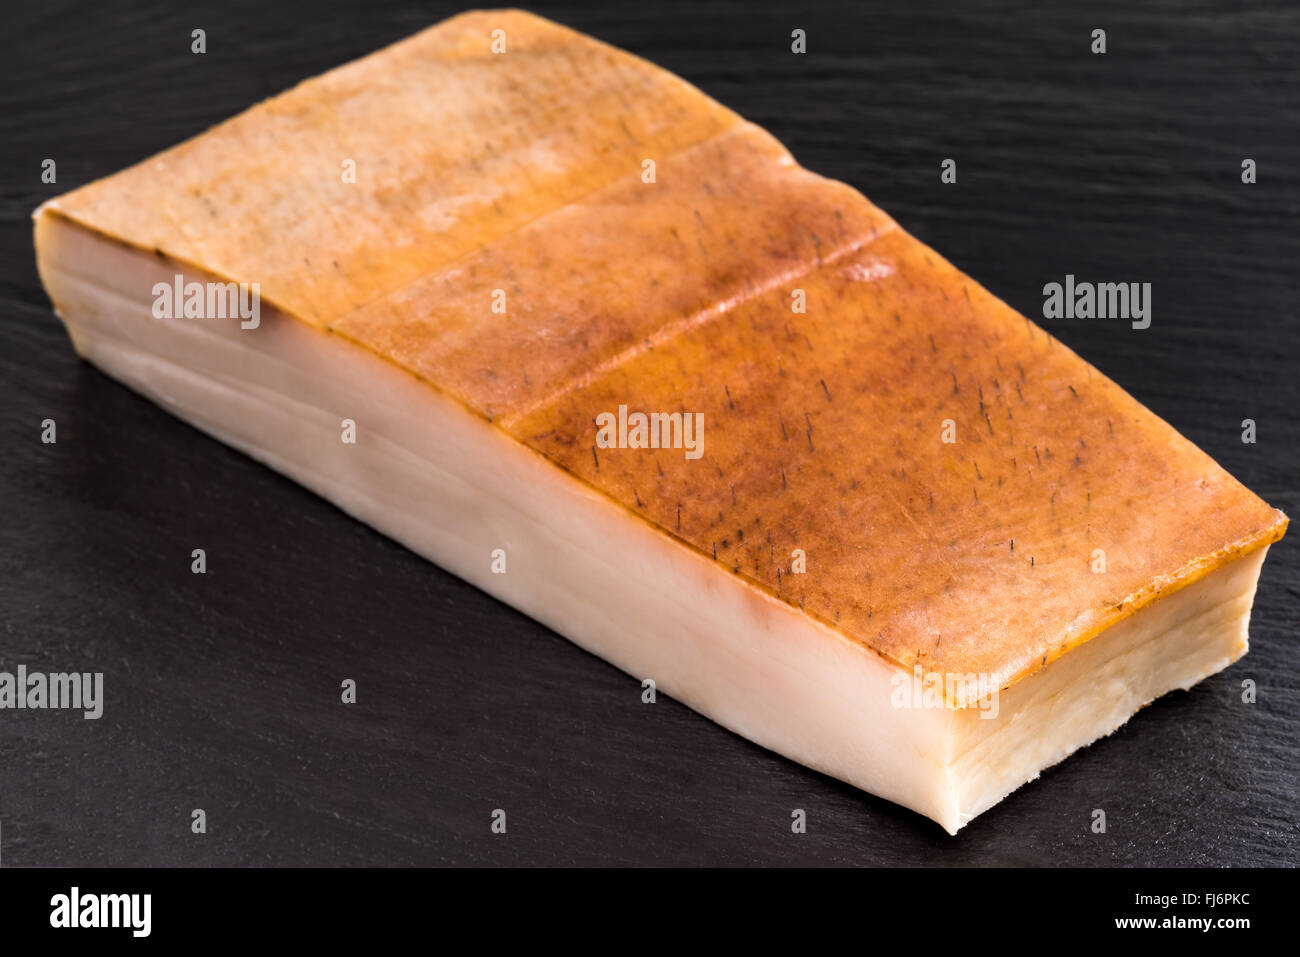 Fat bacon on a black background, bill, pork belly, rind, smoked, skin, calories, diet, flavor, plate, postion, white, - Stock Image